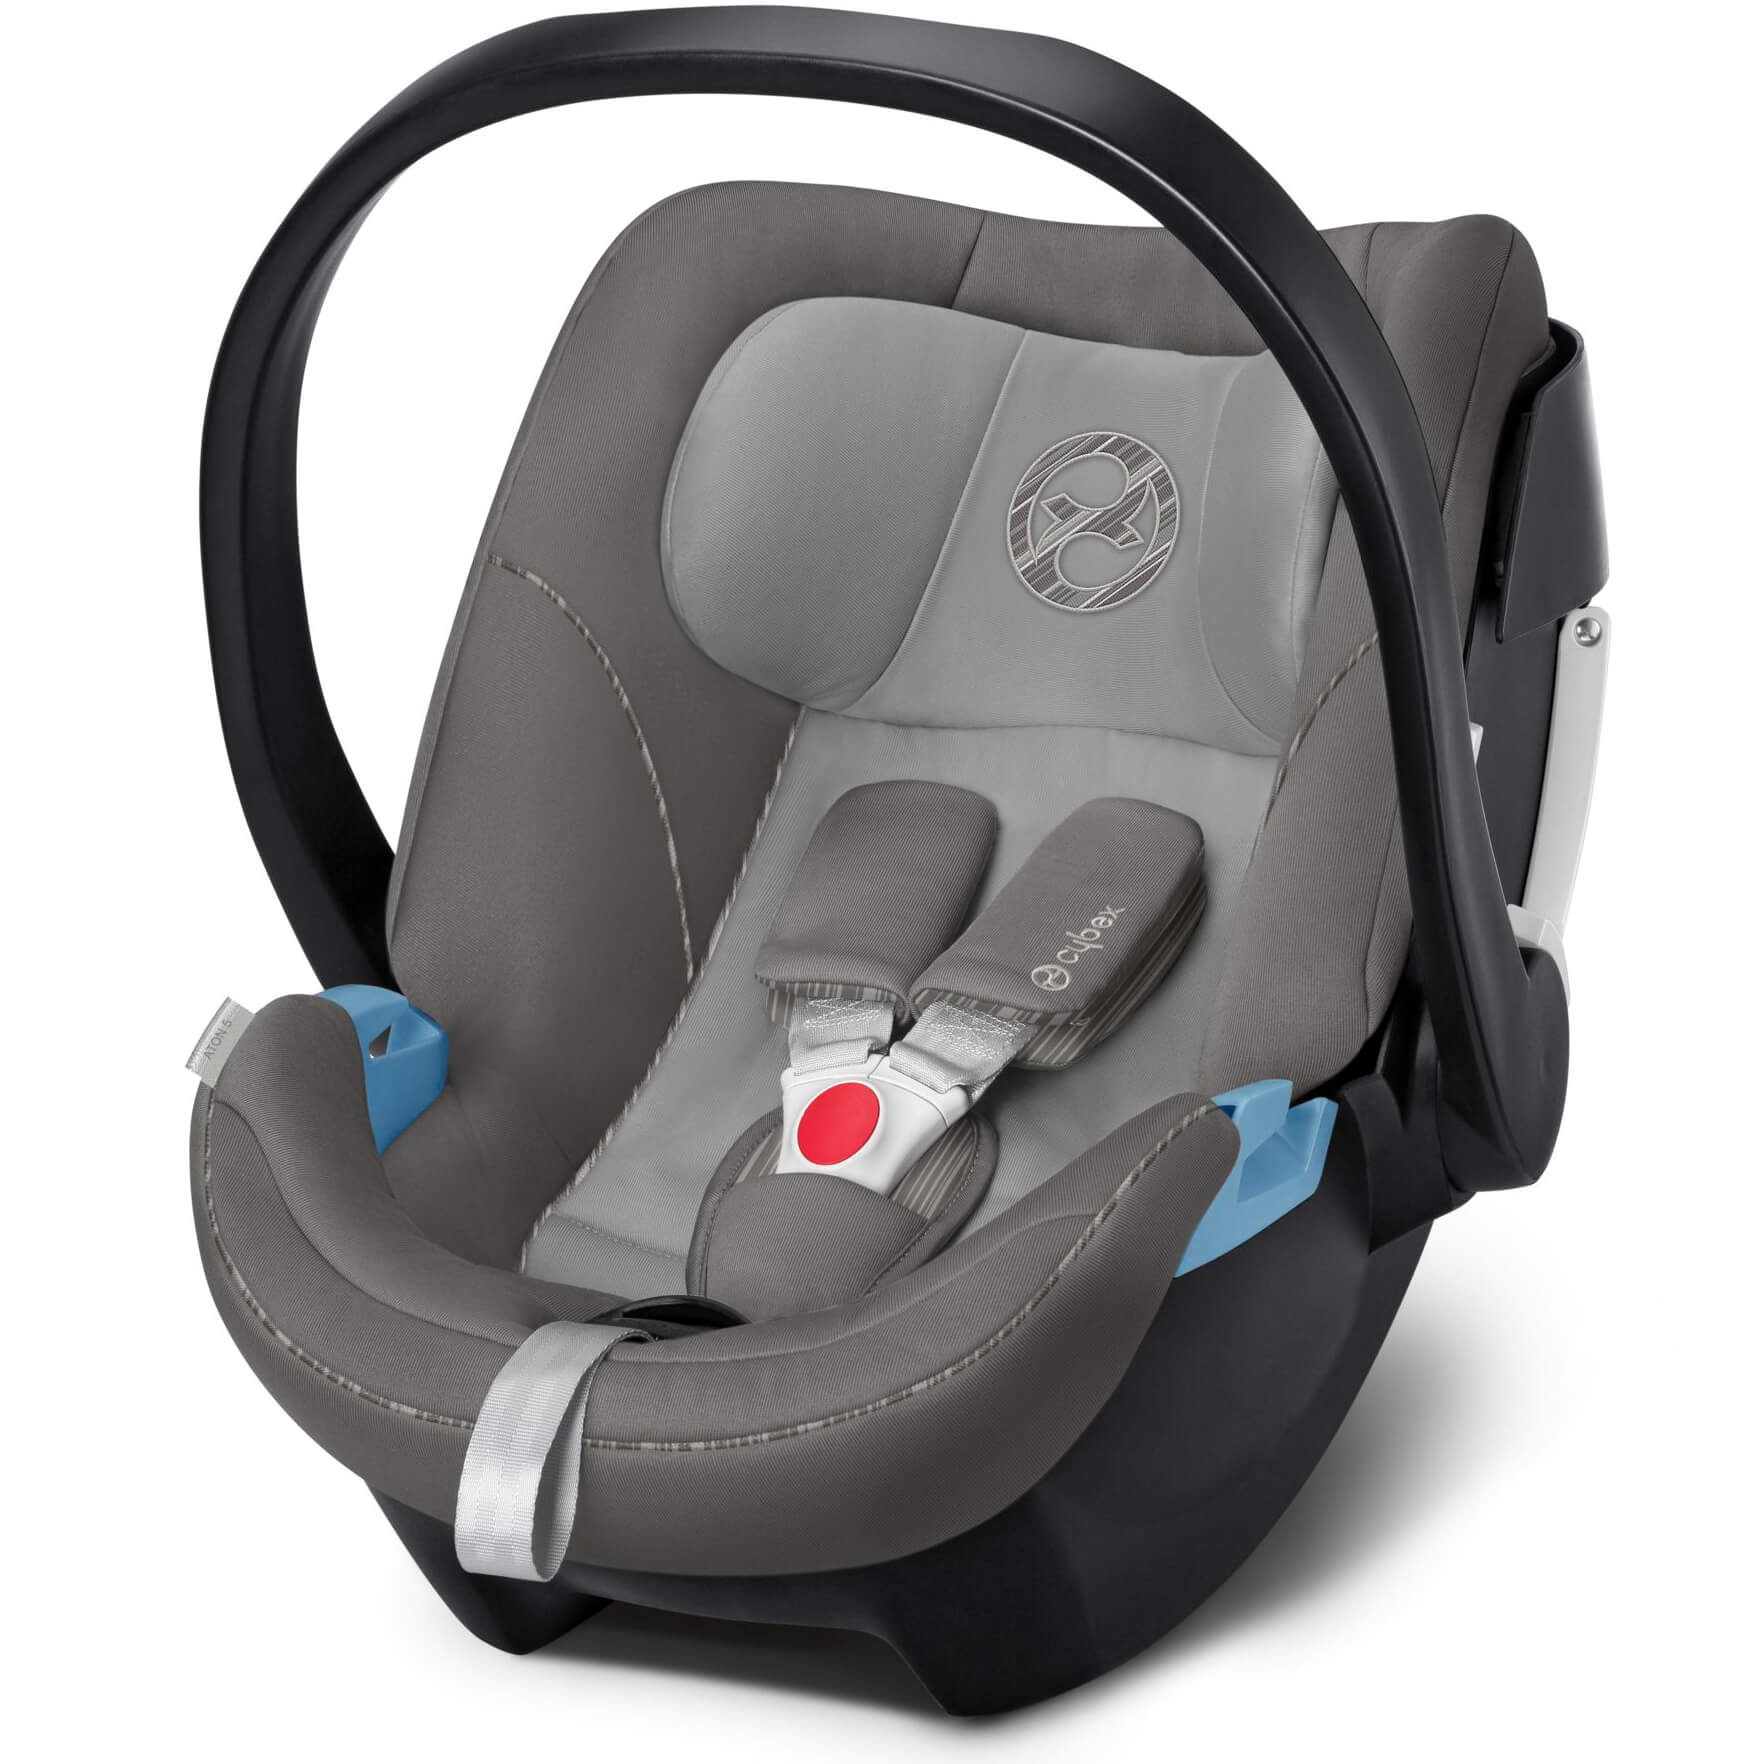 cybex aton 5 manhattan grey infant carrier 2019. Black Bedroom Furniture Sets. Home Design Ideas